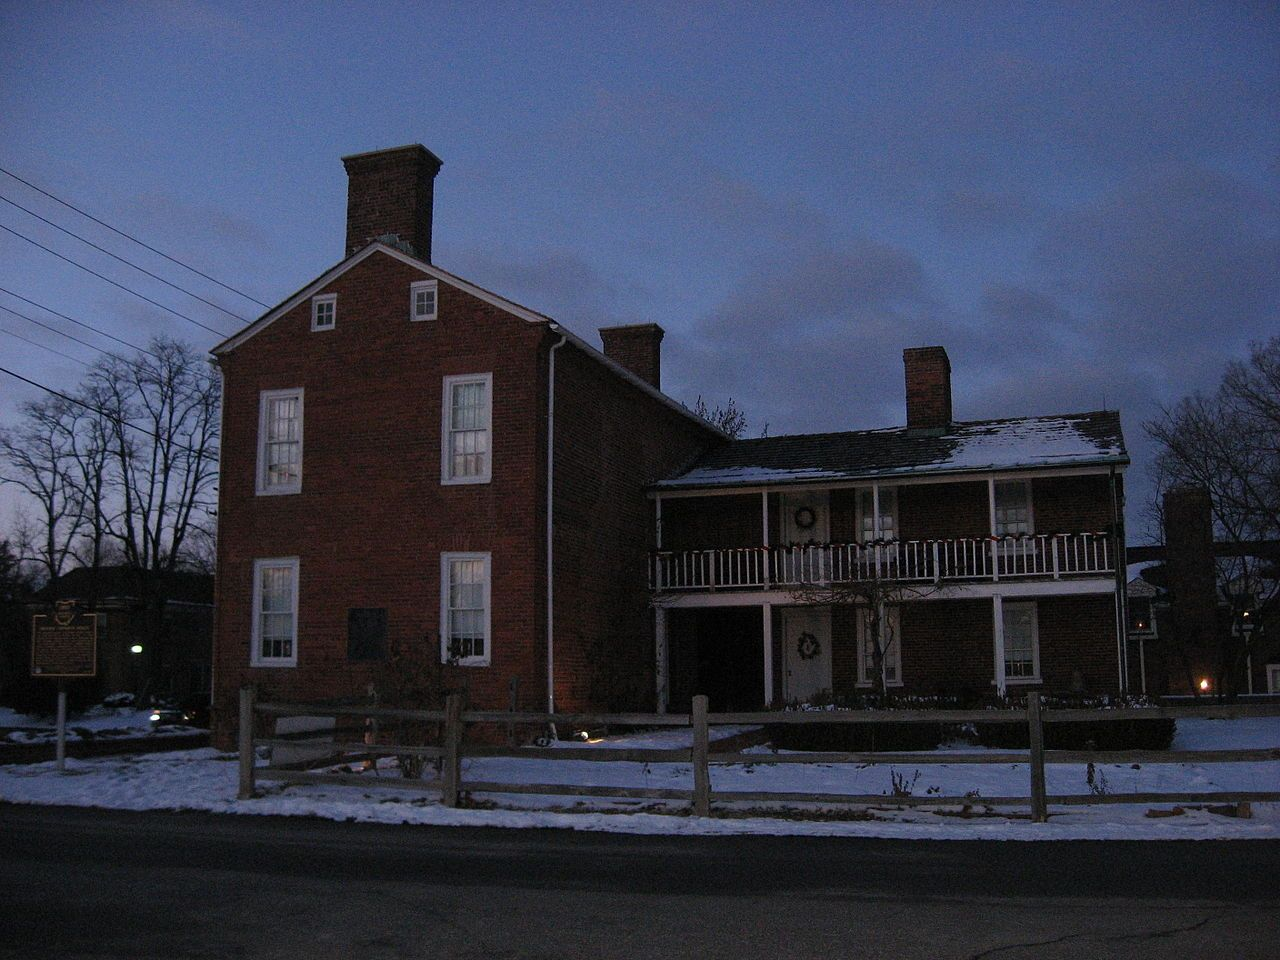 Buttles-Johnson House in Franklin County, Ohio.